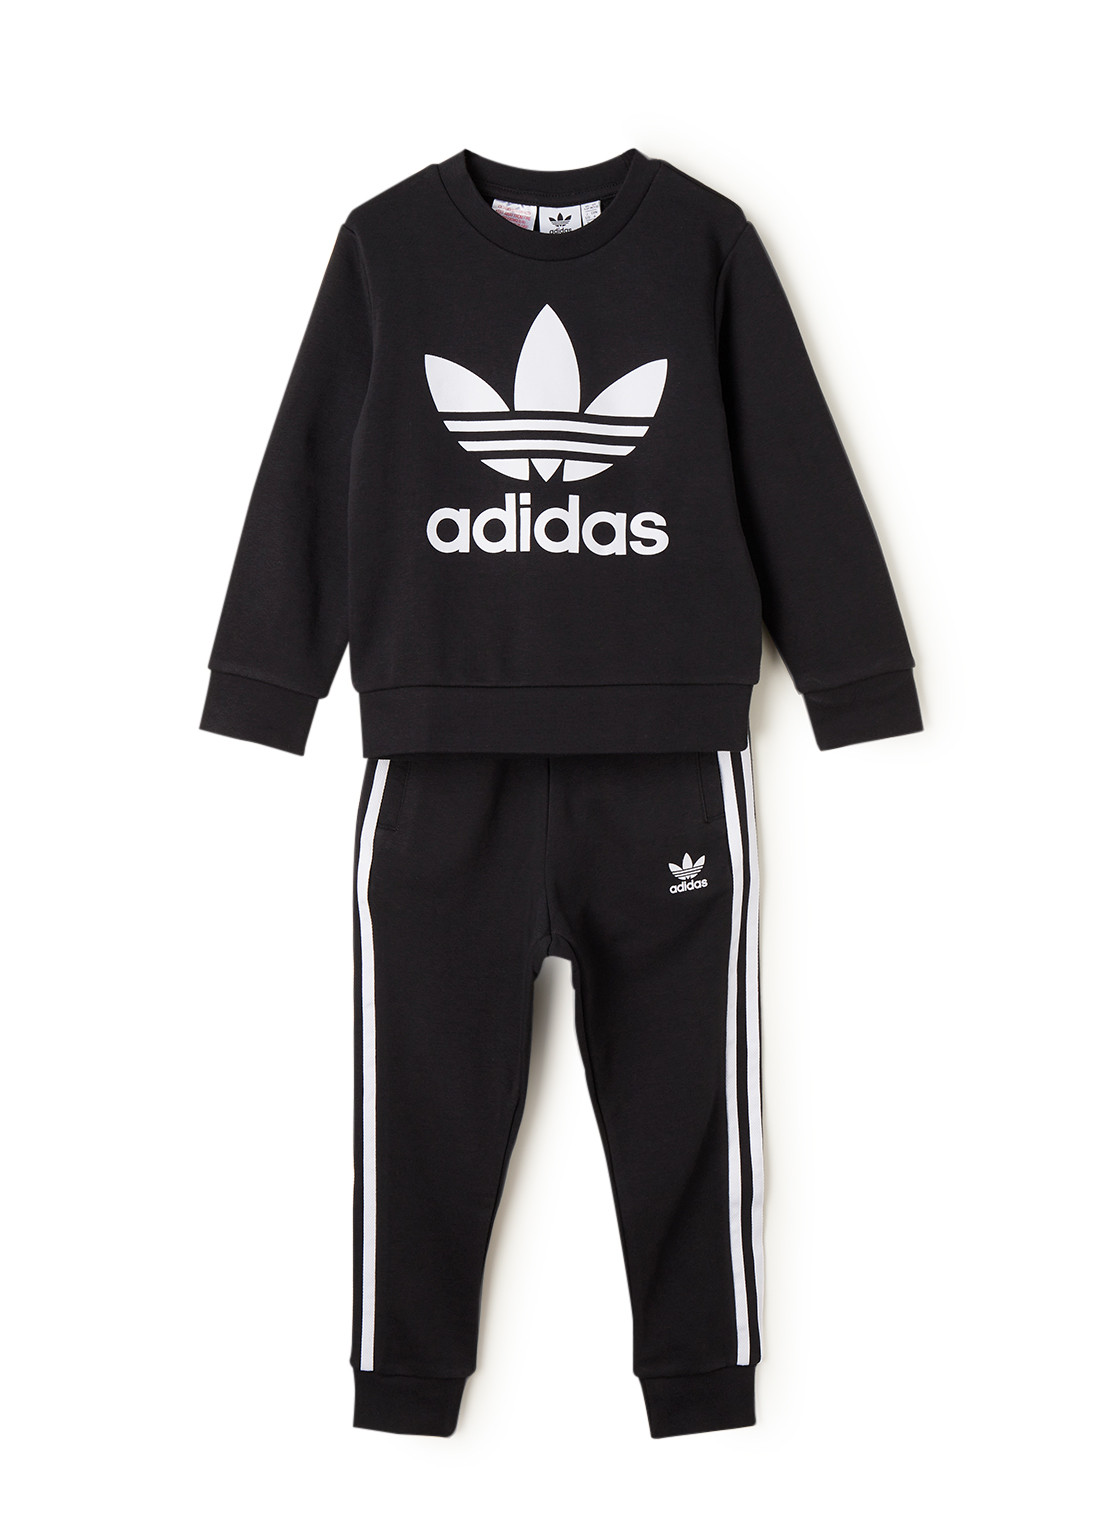 adidas Trefoil set van sweater en joggingbroek 2-delig